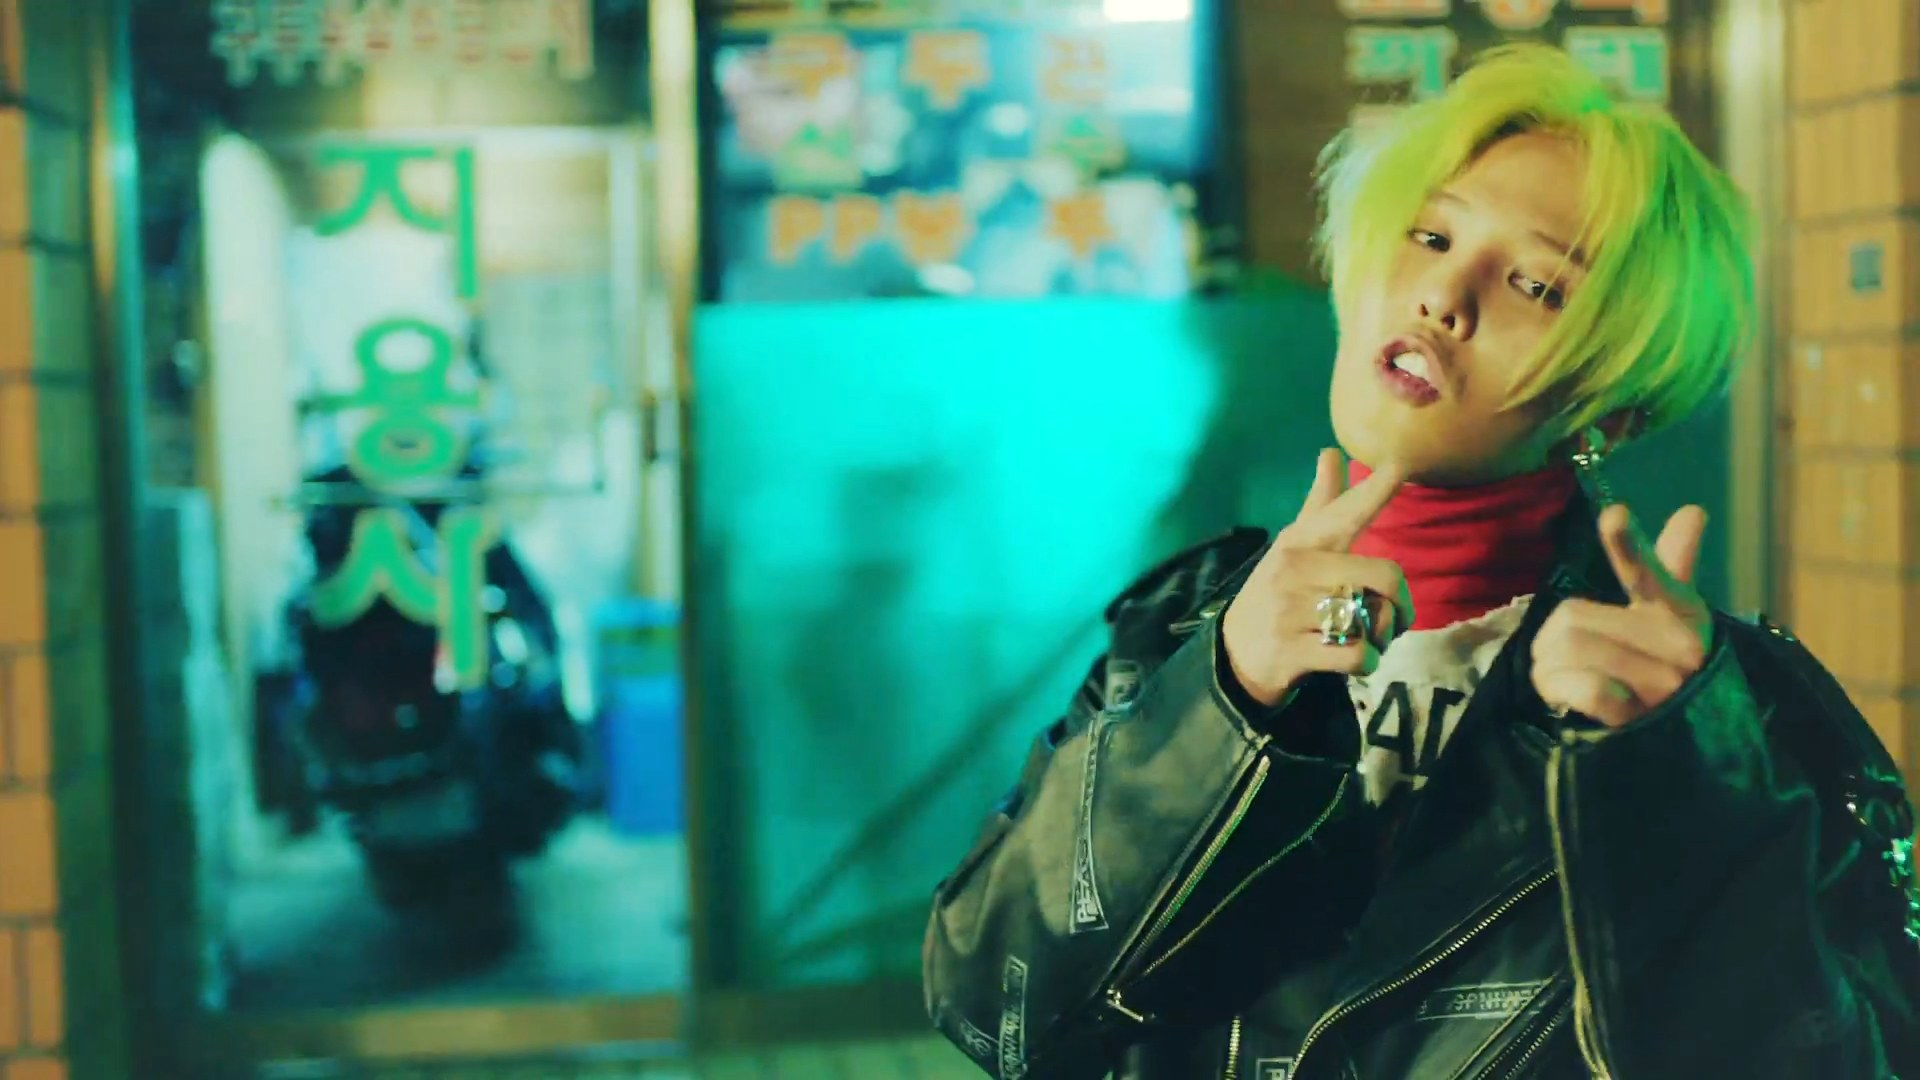 IMG Song Mino Has Green Hair Currently